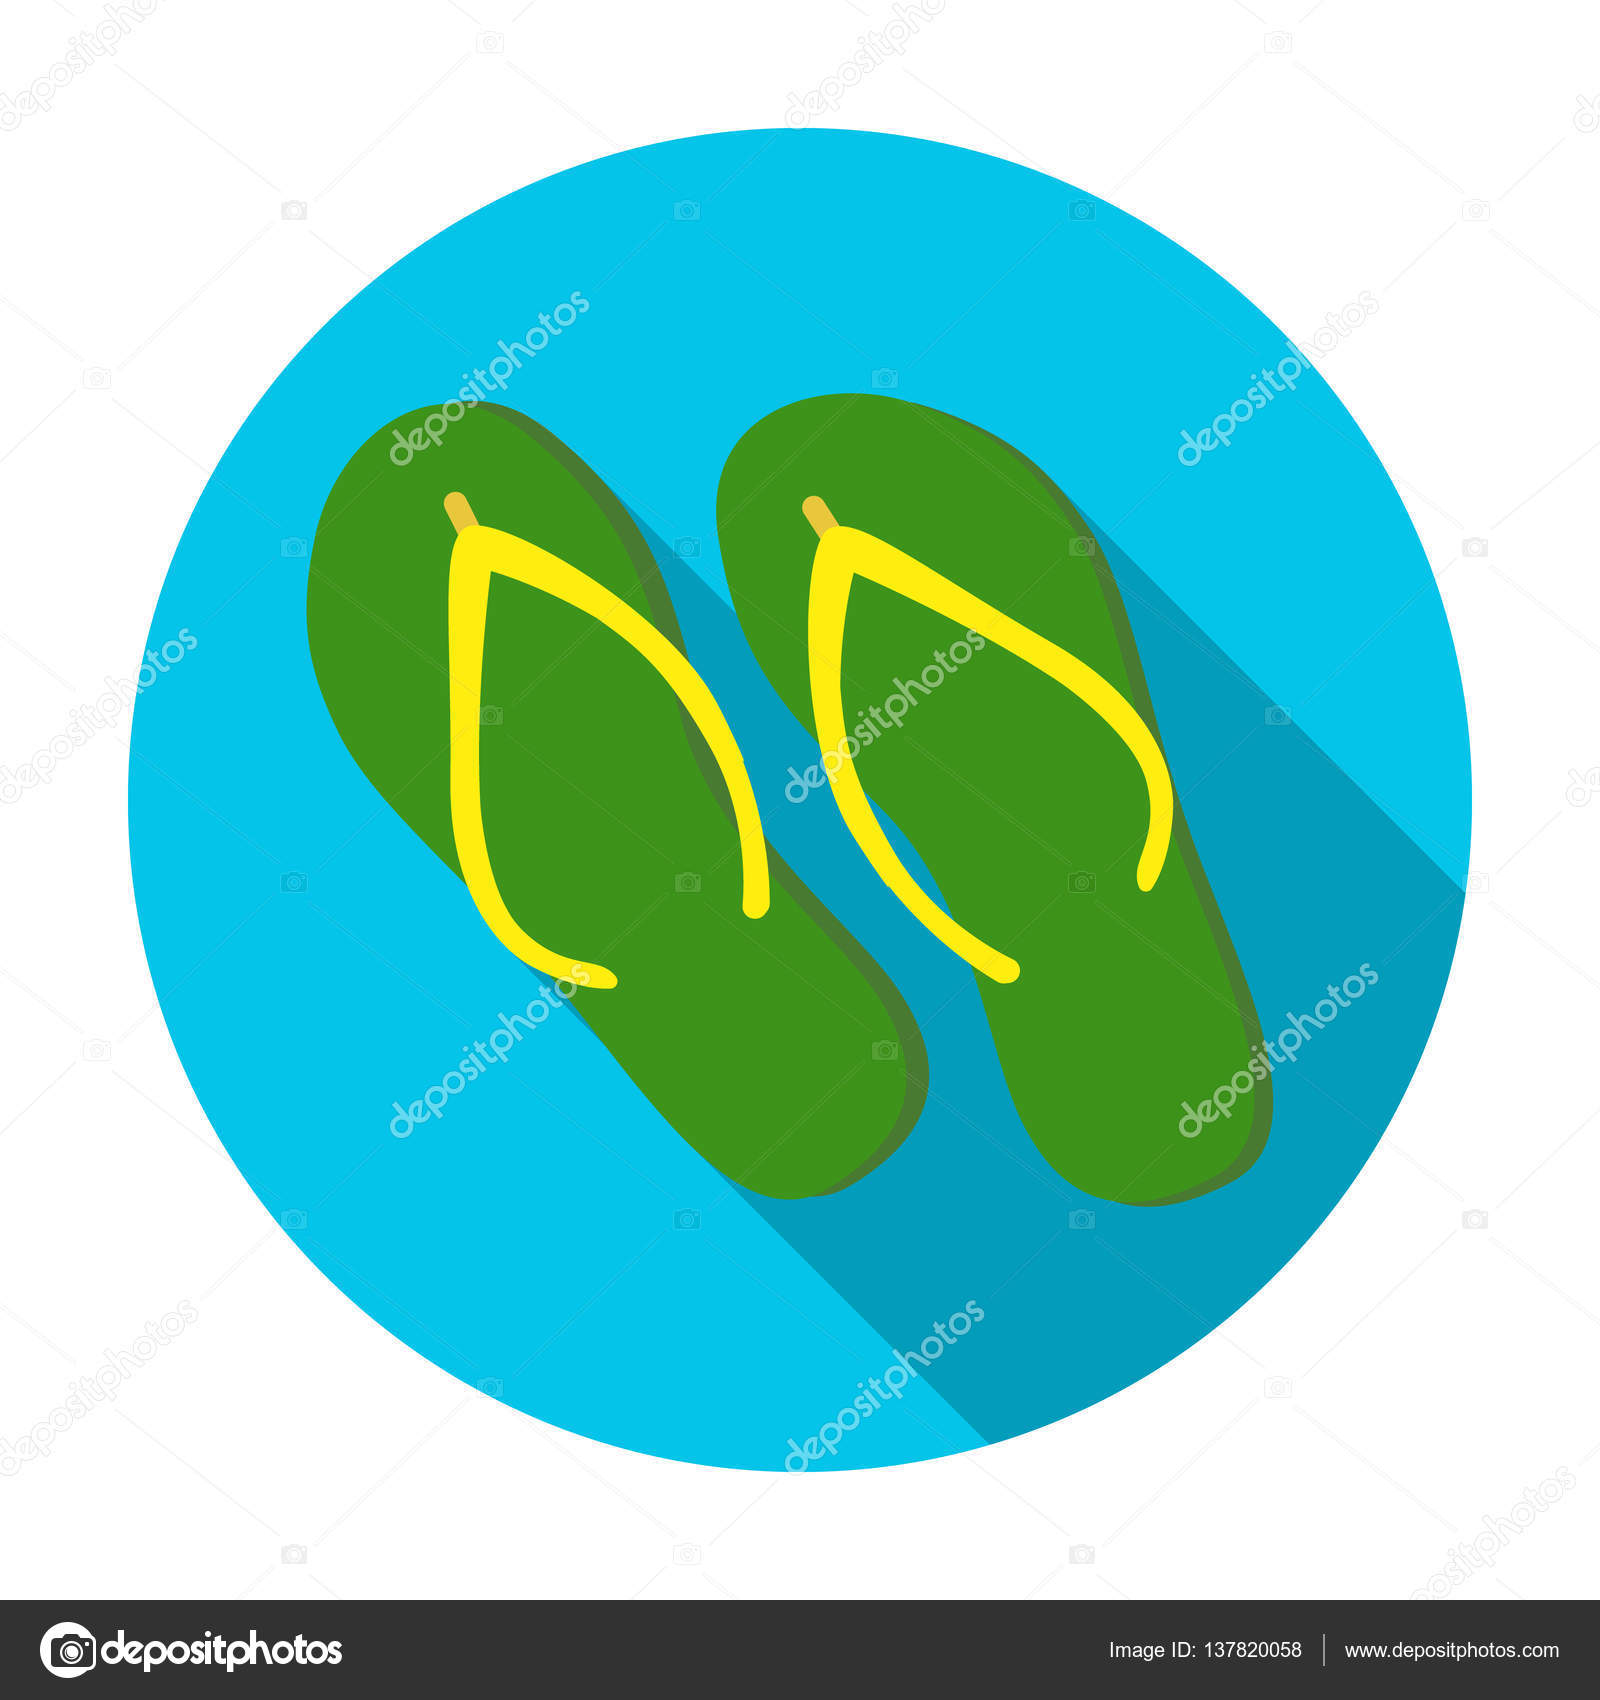 7fa176d56353 Green flip-flops icon in flat design isolated on white background. Brazil  country symbol stock vector illustration.